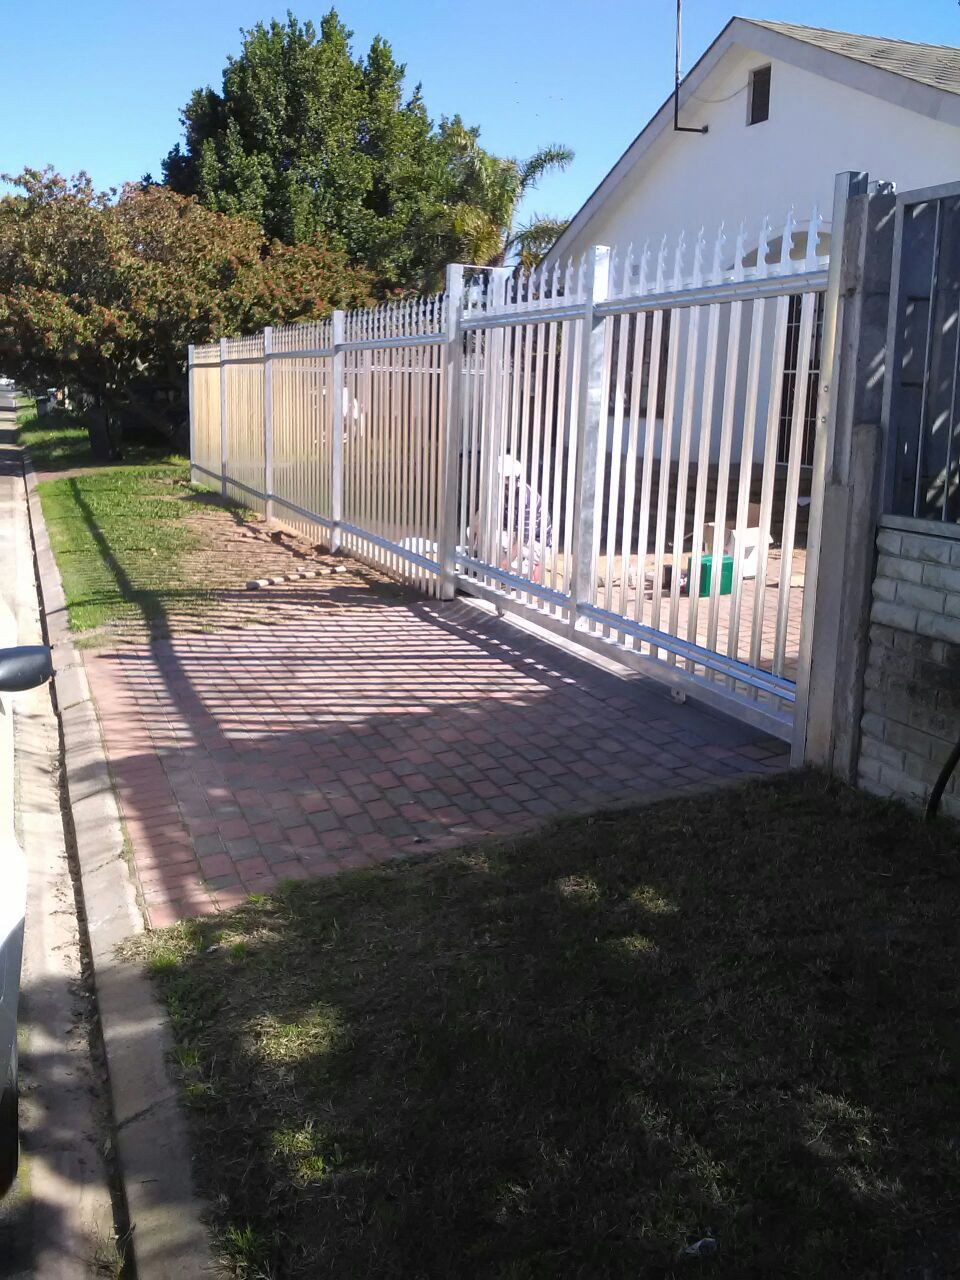 Pin By Palisade World On Palisade Fencing From Palisade World Palisade Fence Outdoor Decor Outdoor